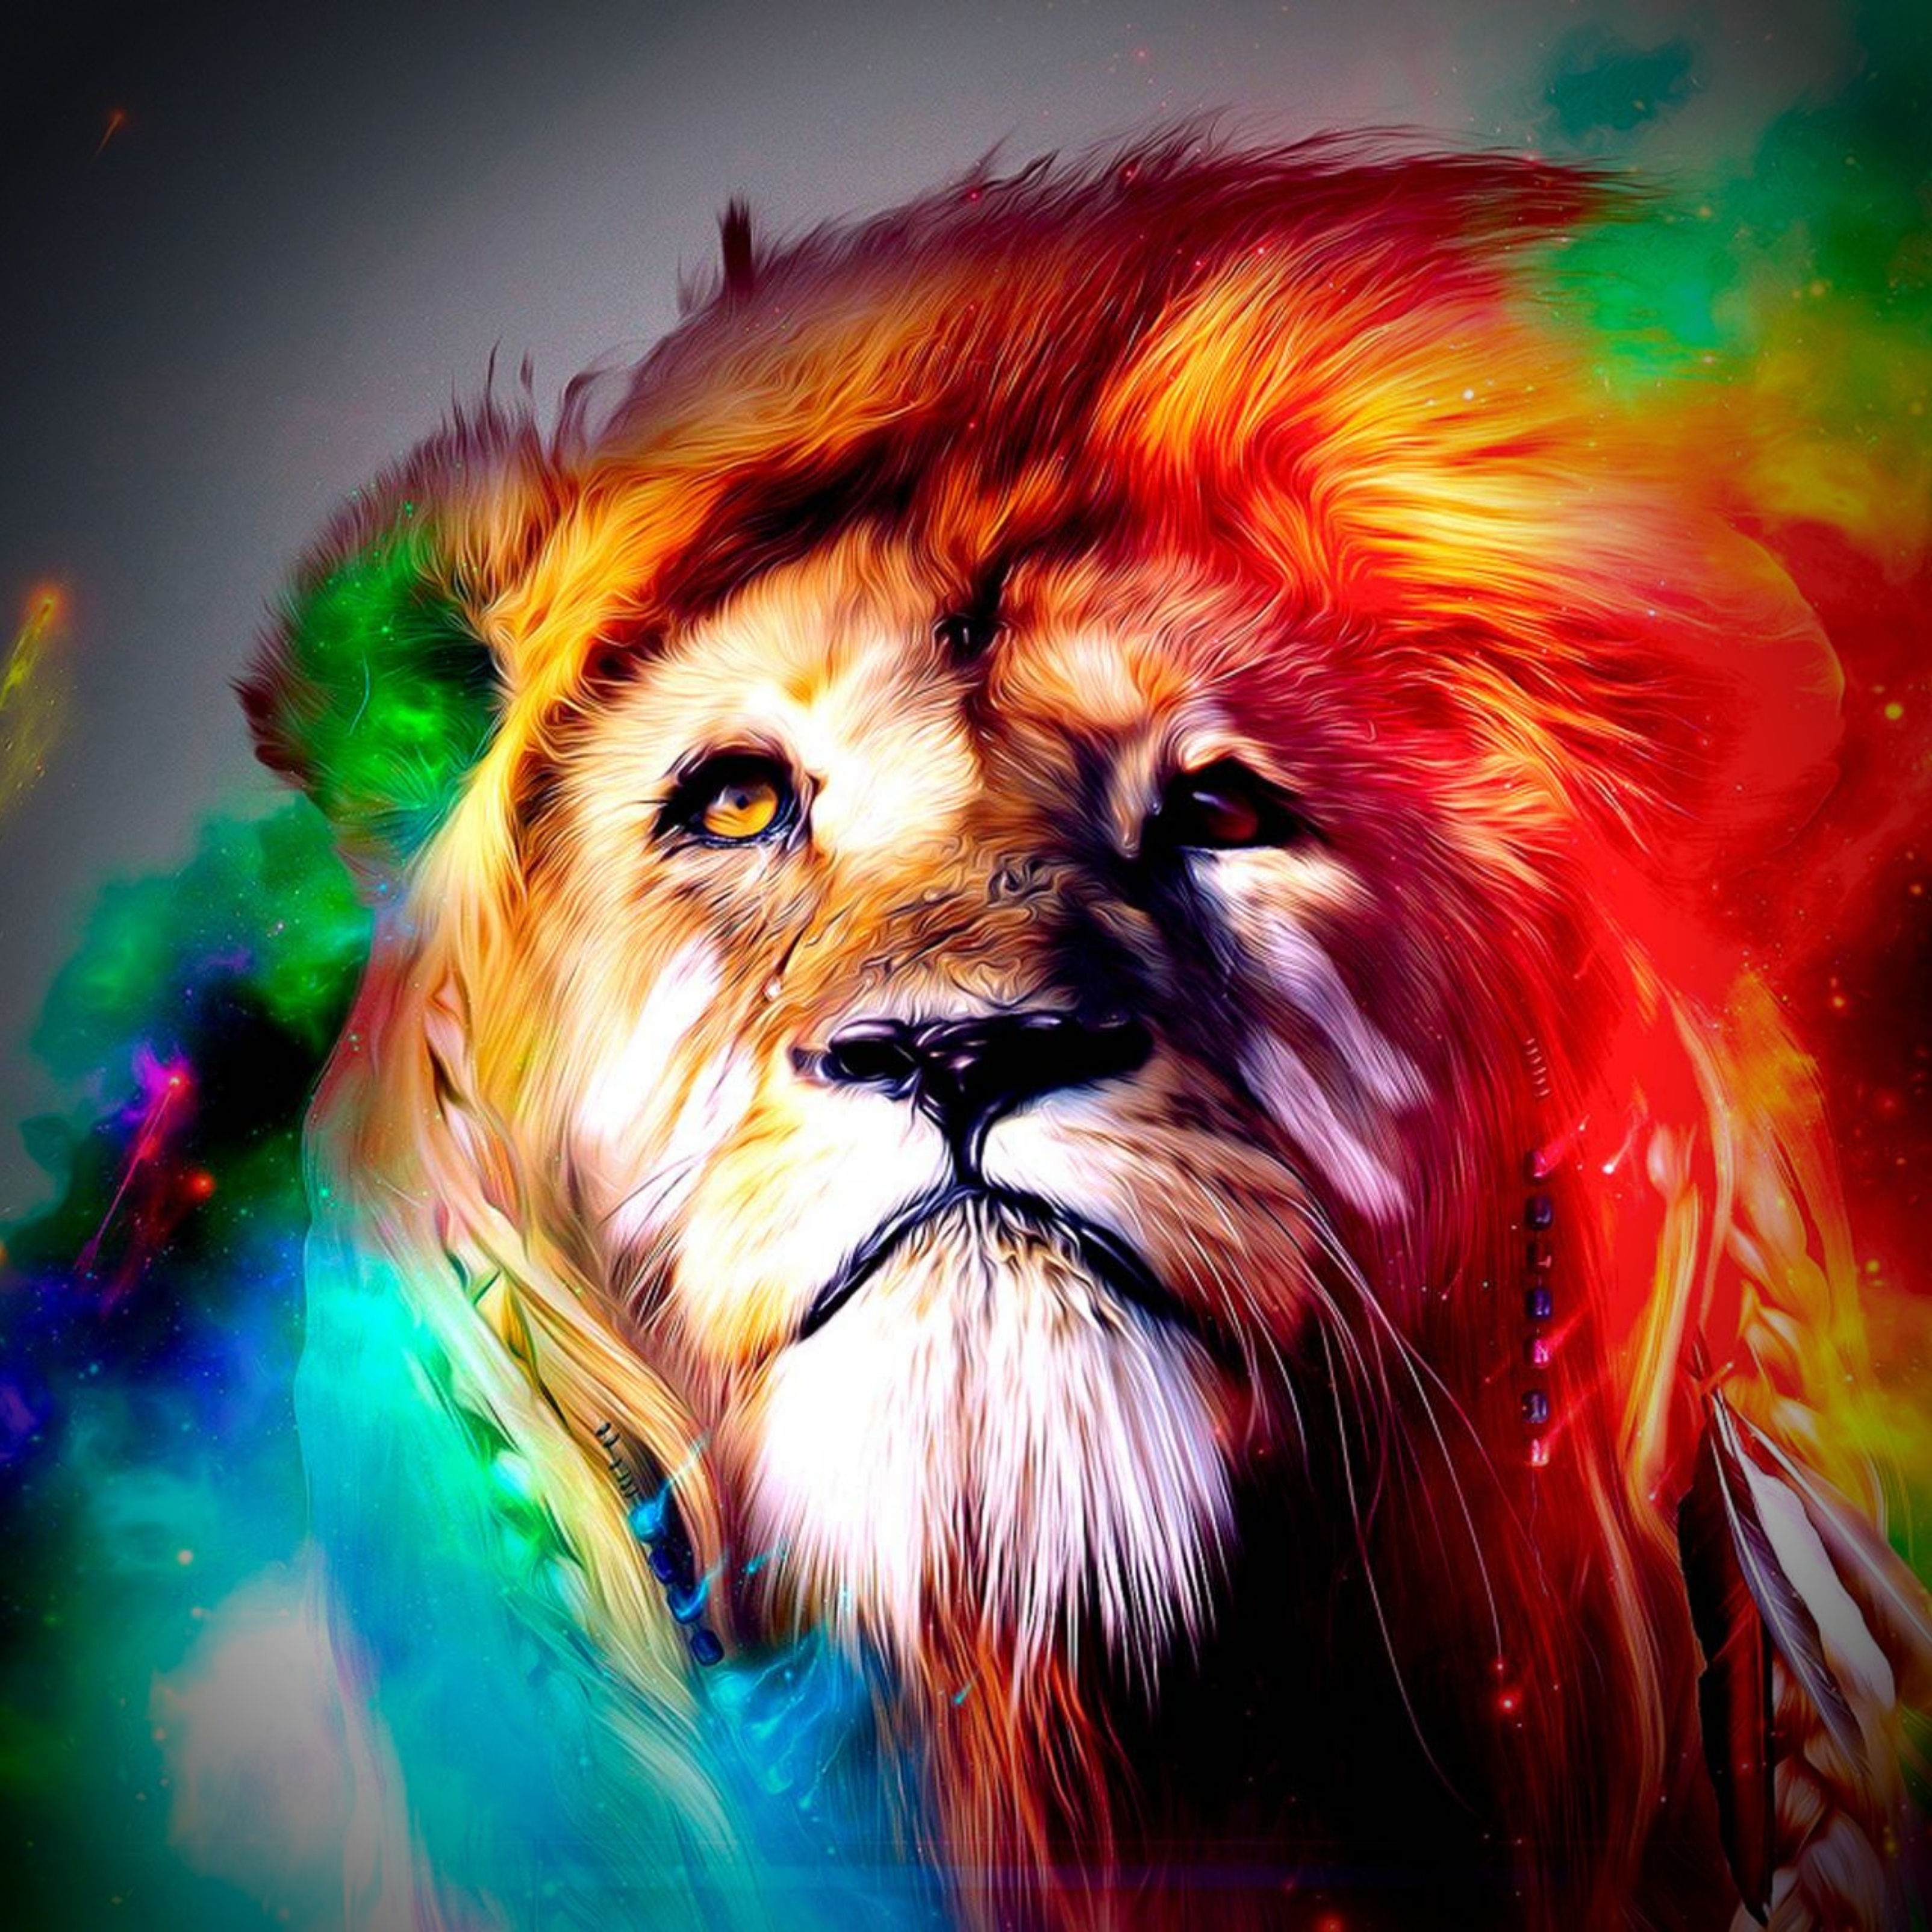 iPad Wallpapers Lion Colorful Face iPad Wallpaper 3208x3208 px